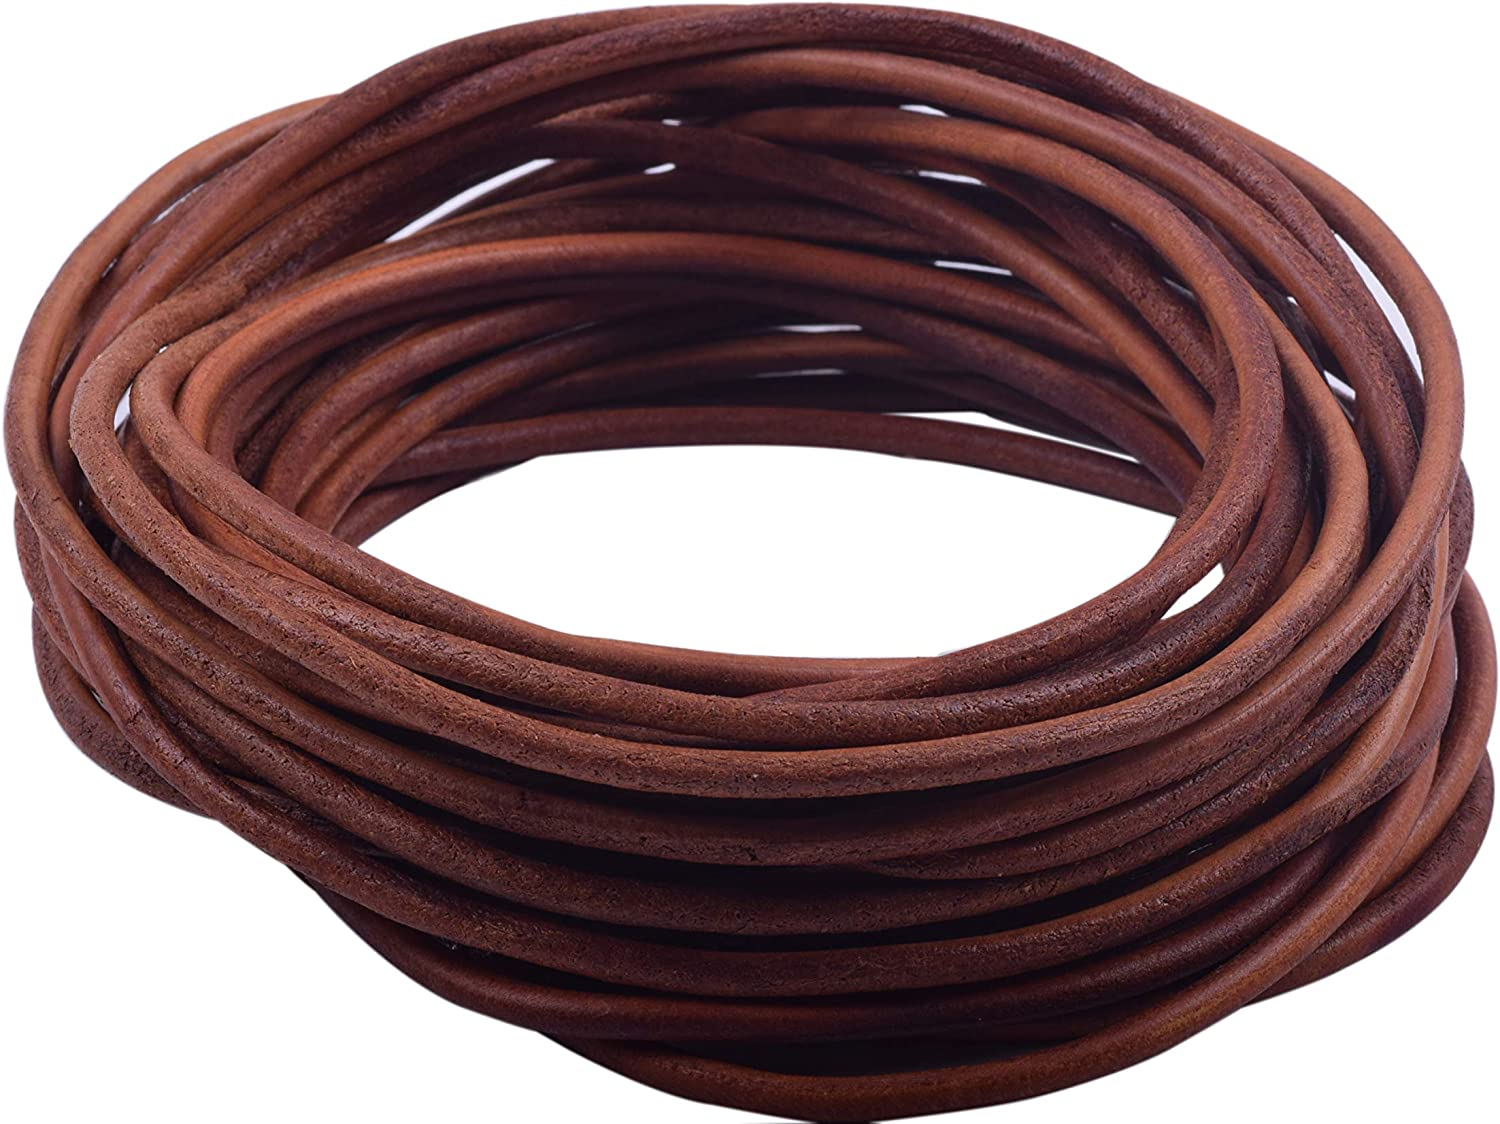 Brown KONMAY 10 Yards 3.0mm Solid Round Real Leather Cord for Jewelry Making Crafting Beading